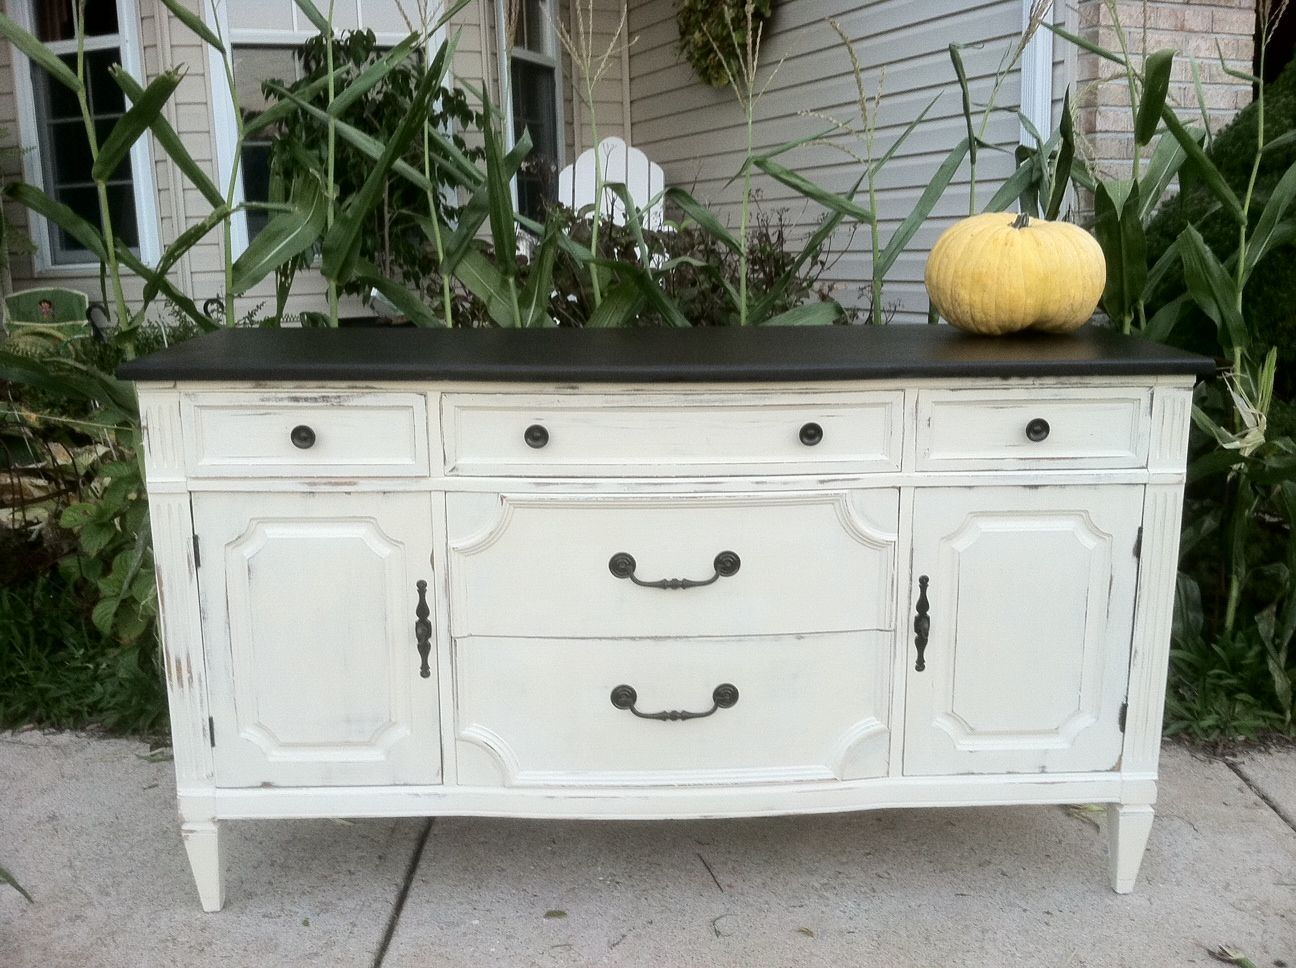 Painting furniture ideas distressed - Repurposed Furniture For Sale Do You Have Something You Painted With Annie Sloan Chalk Paint